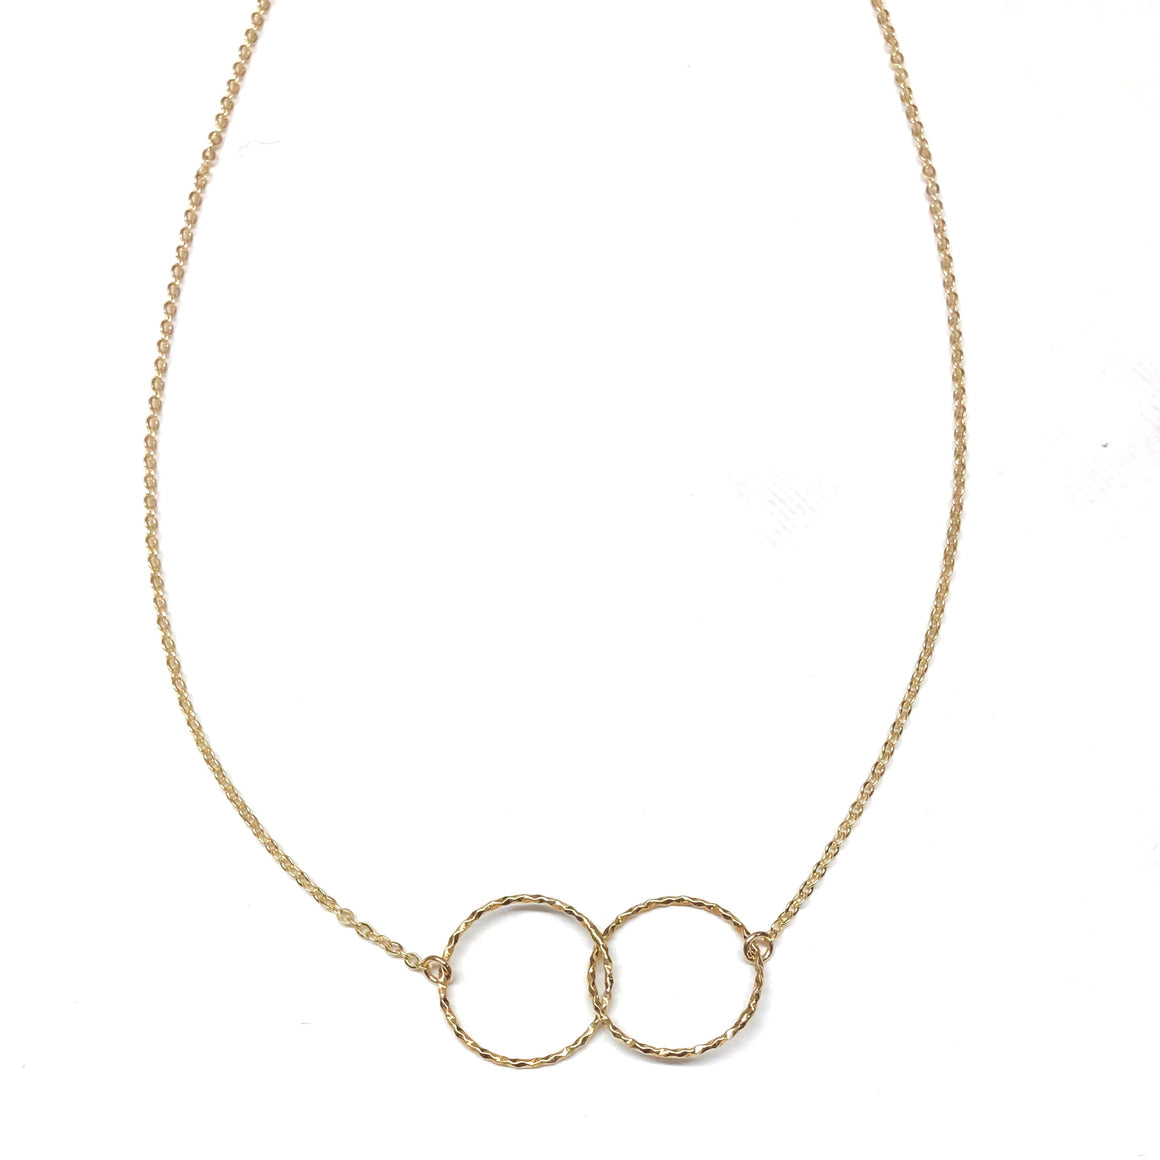 Golden Double Circle Necklace - Nikki Smith Designs